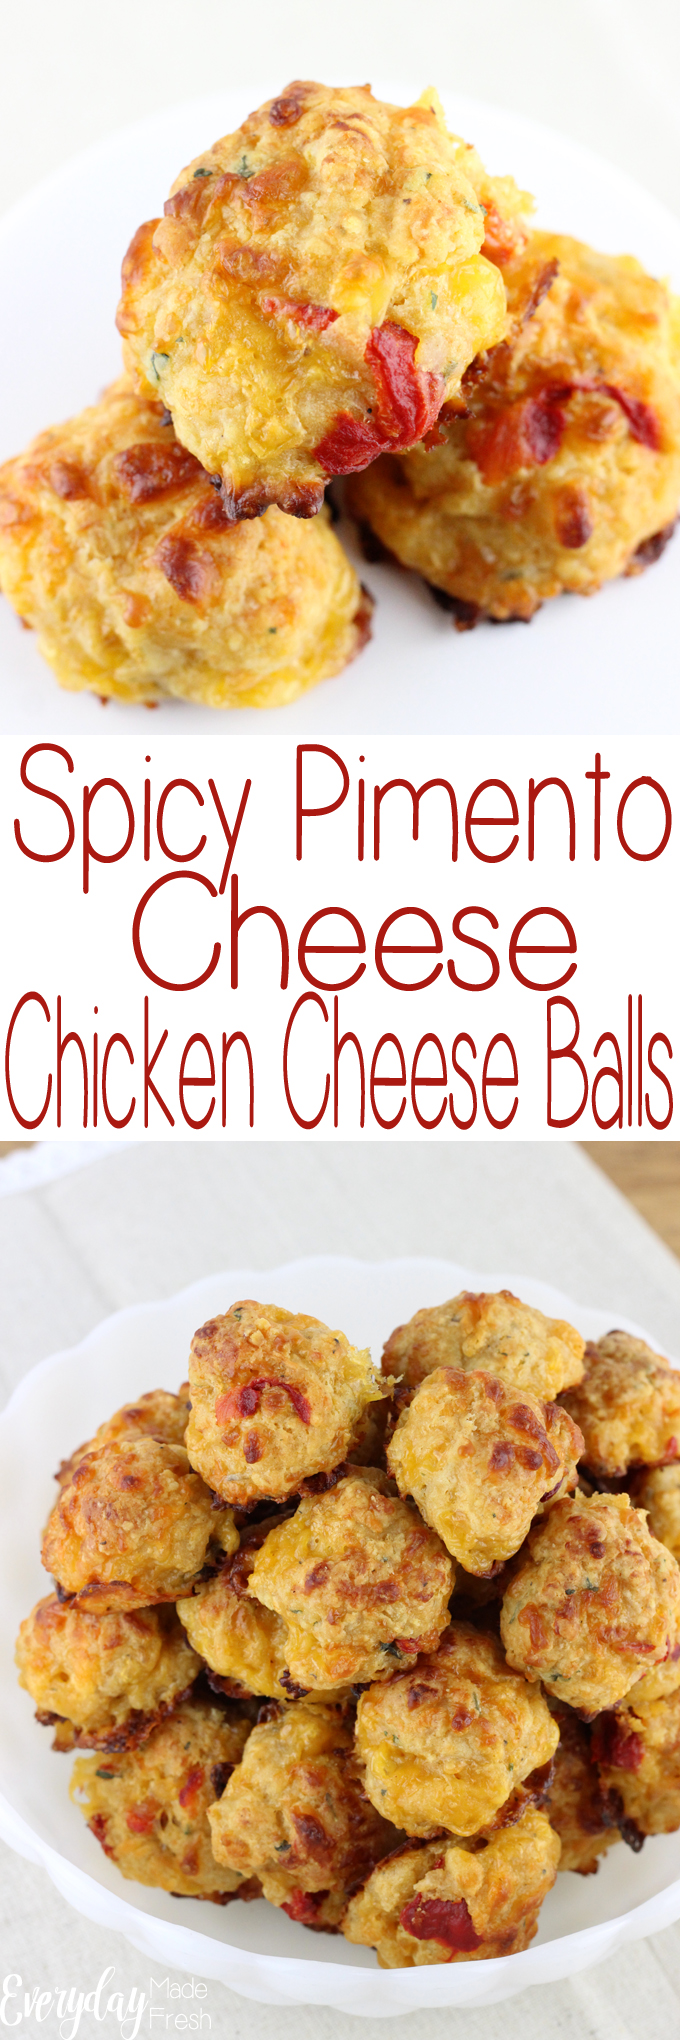 Spicy Pimento Cheese Chicken Cheeseballs are the perfect way to spice up a party! With only a few ingredients you have the perfect appetizer for any occasion. | EverydayMadeFresh.com